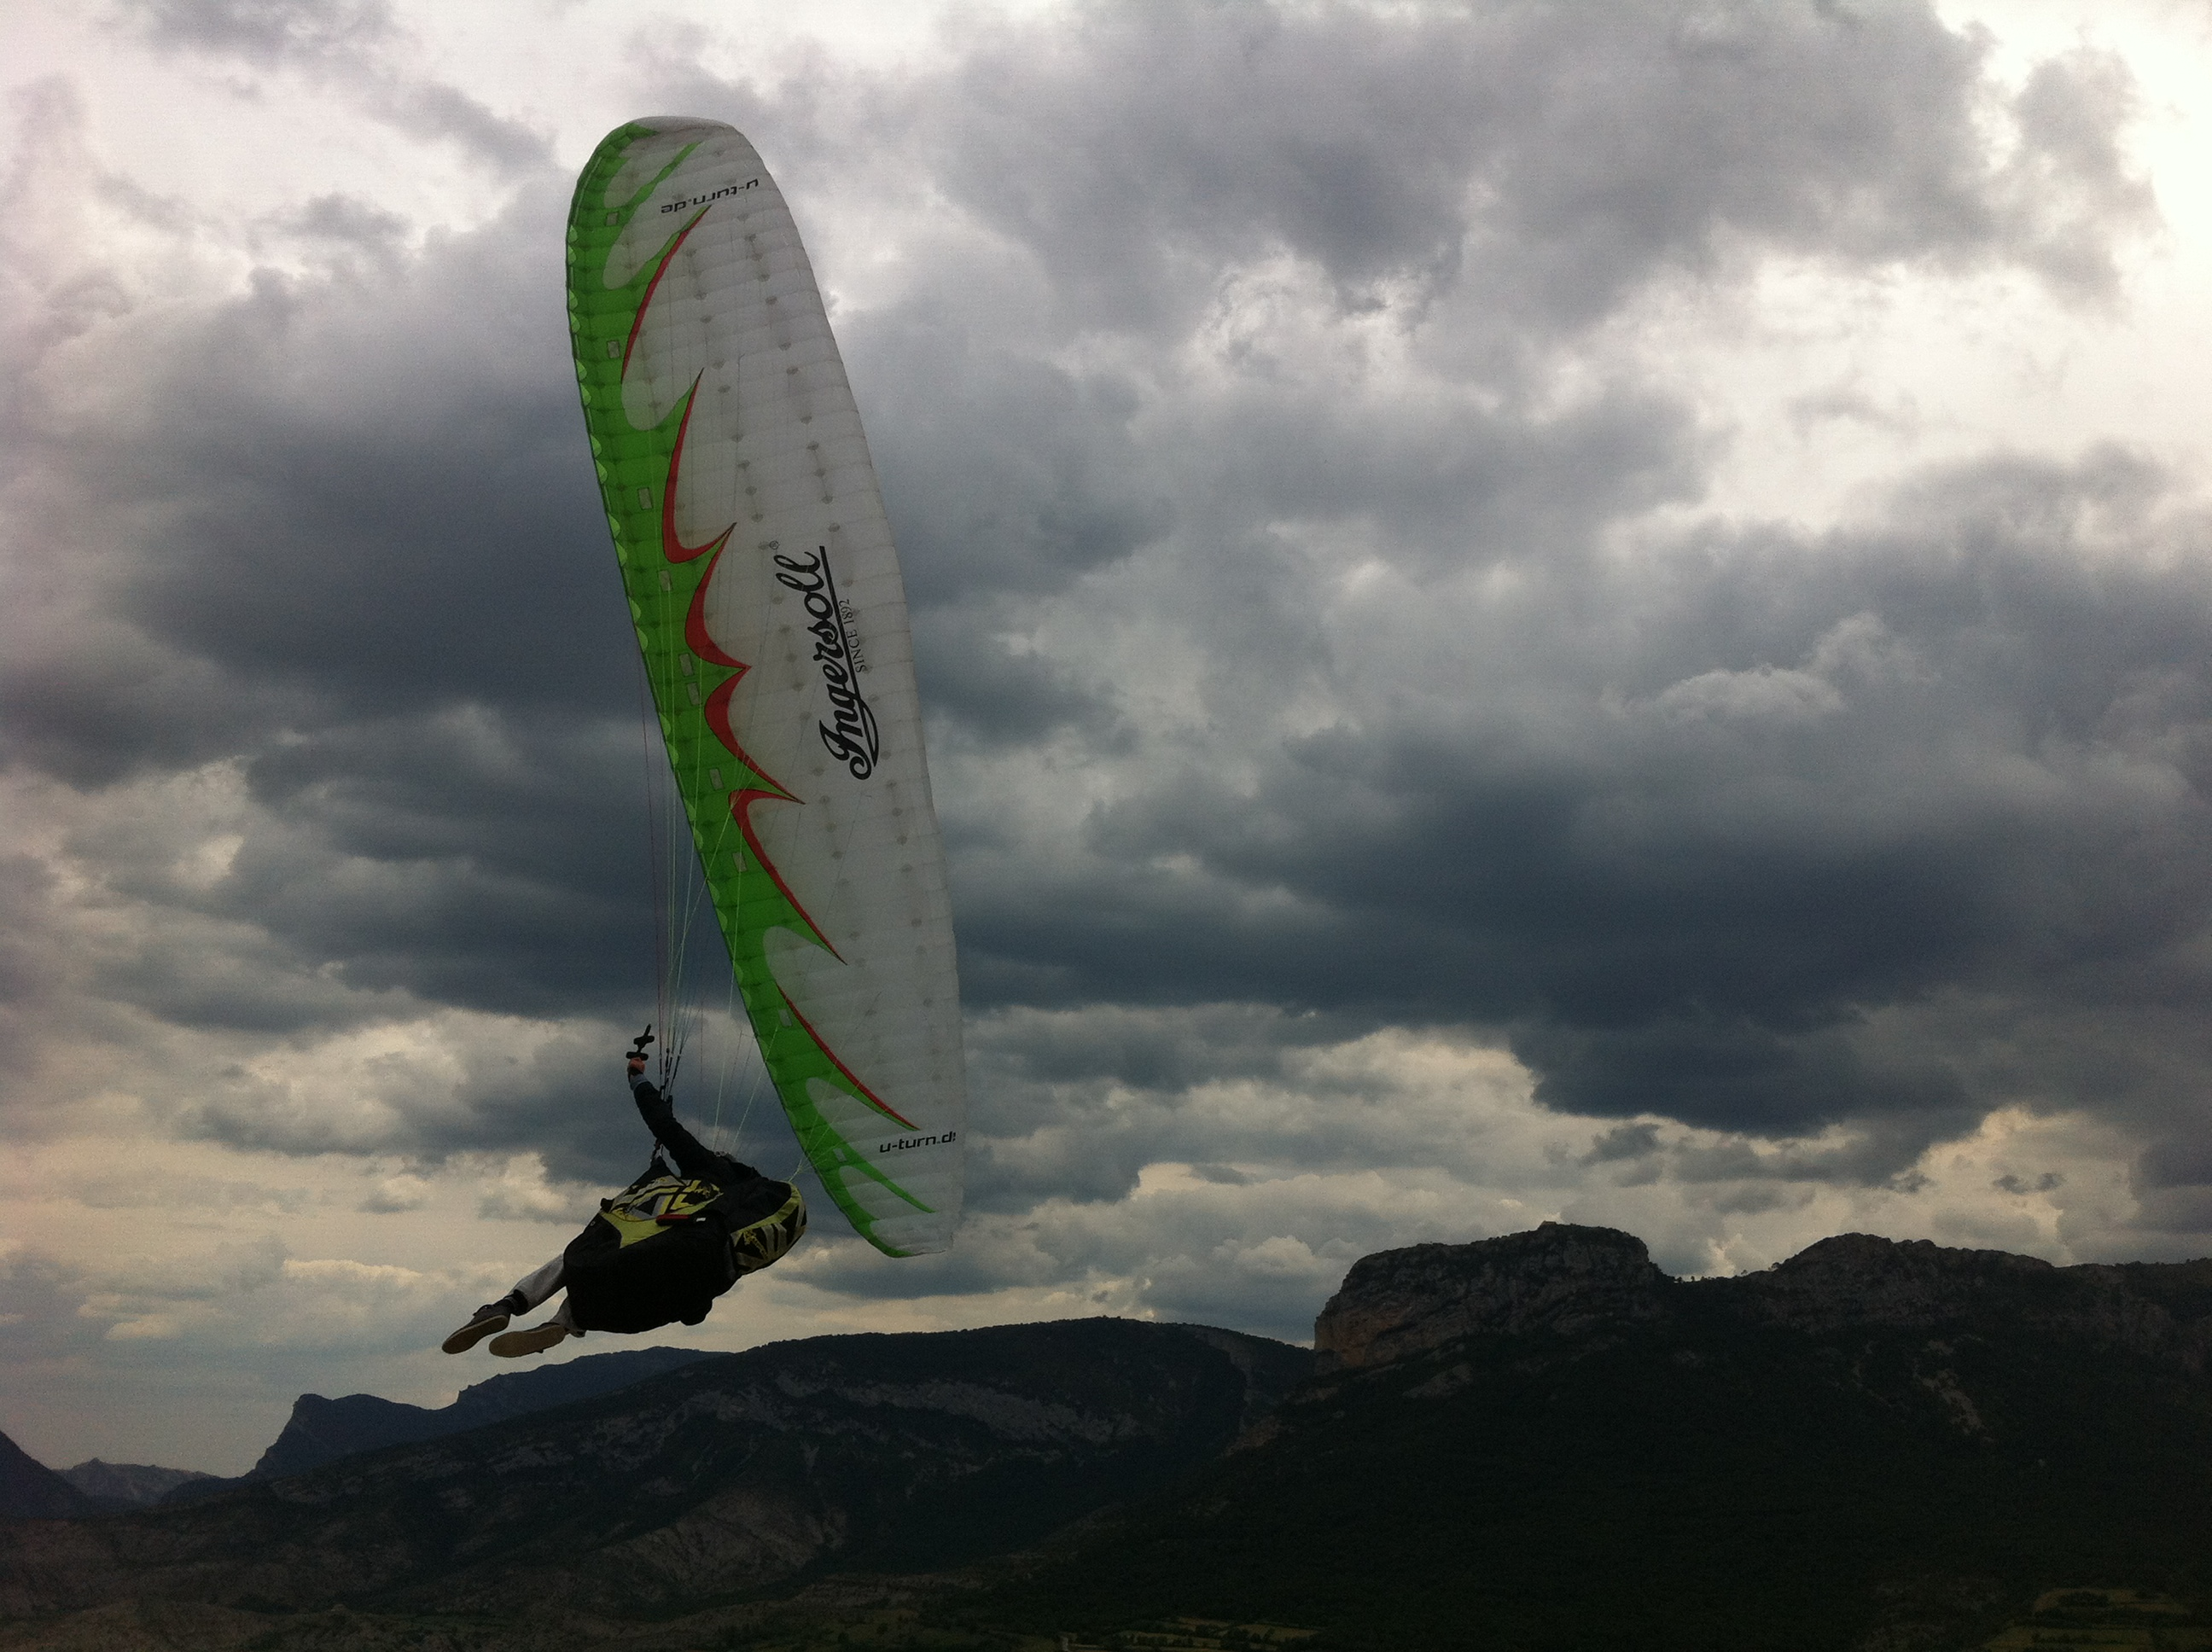 urubu parapente photo algodonales16